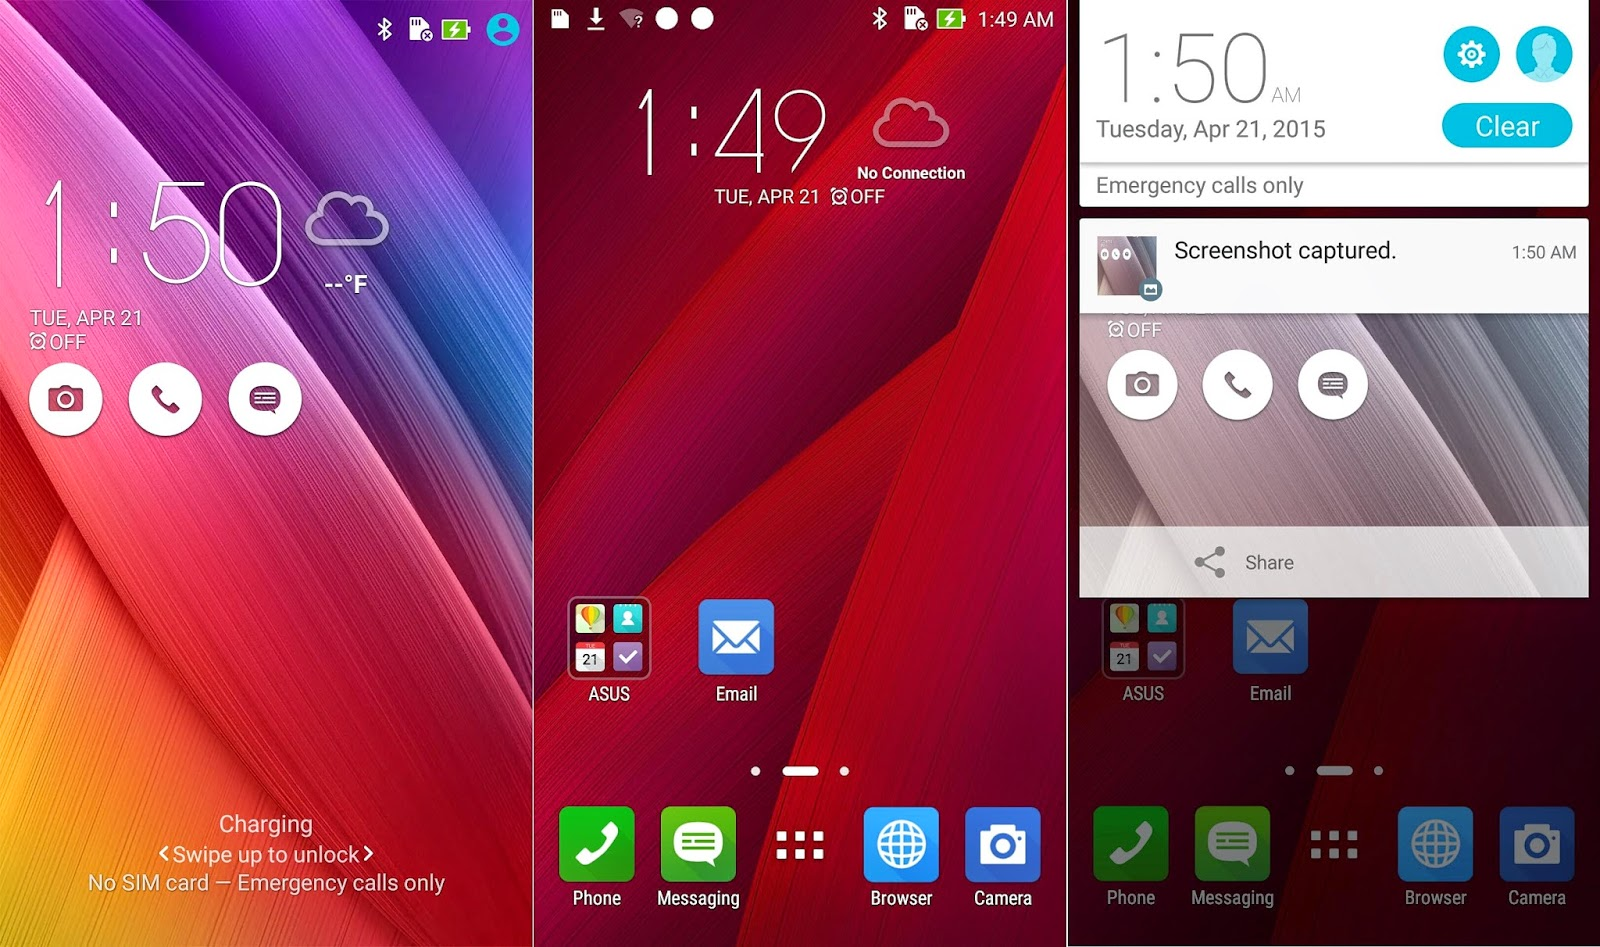 Asus Zenfone 2 Ze551ml Quick Review The Affordable Flagship Ram 4gb Rom 32gb